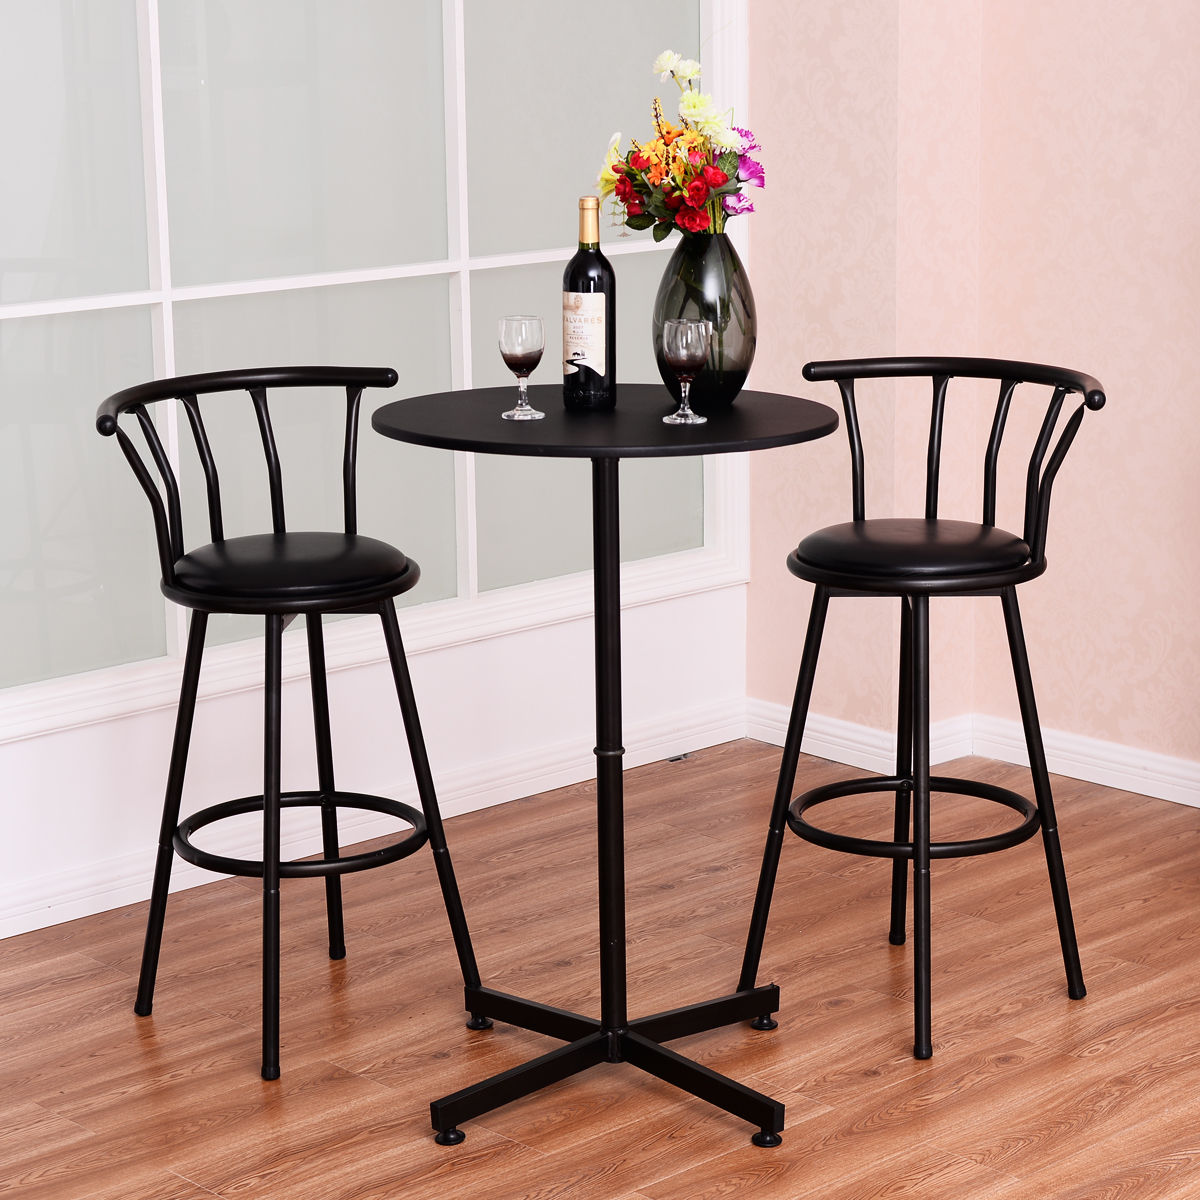 Costway 3 Piece Bar Table Set with 2 Stools Bistro Pub Kitchen Dining Furniture Black & Costway 3 Piece Bar Table Set with 2 Stools Bistro Pub Kitchen Dining Furniture Black